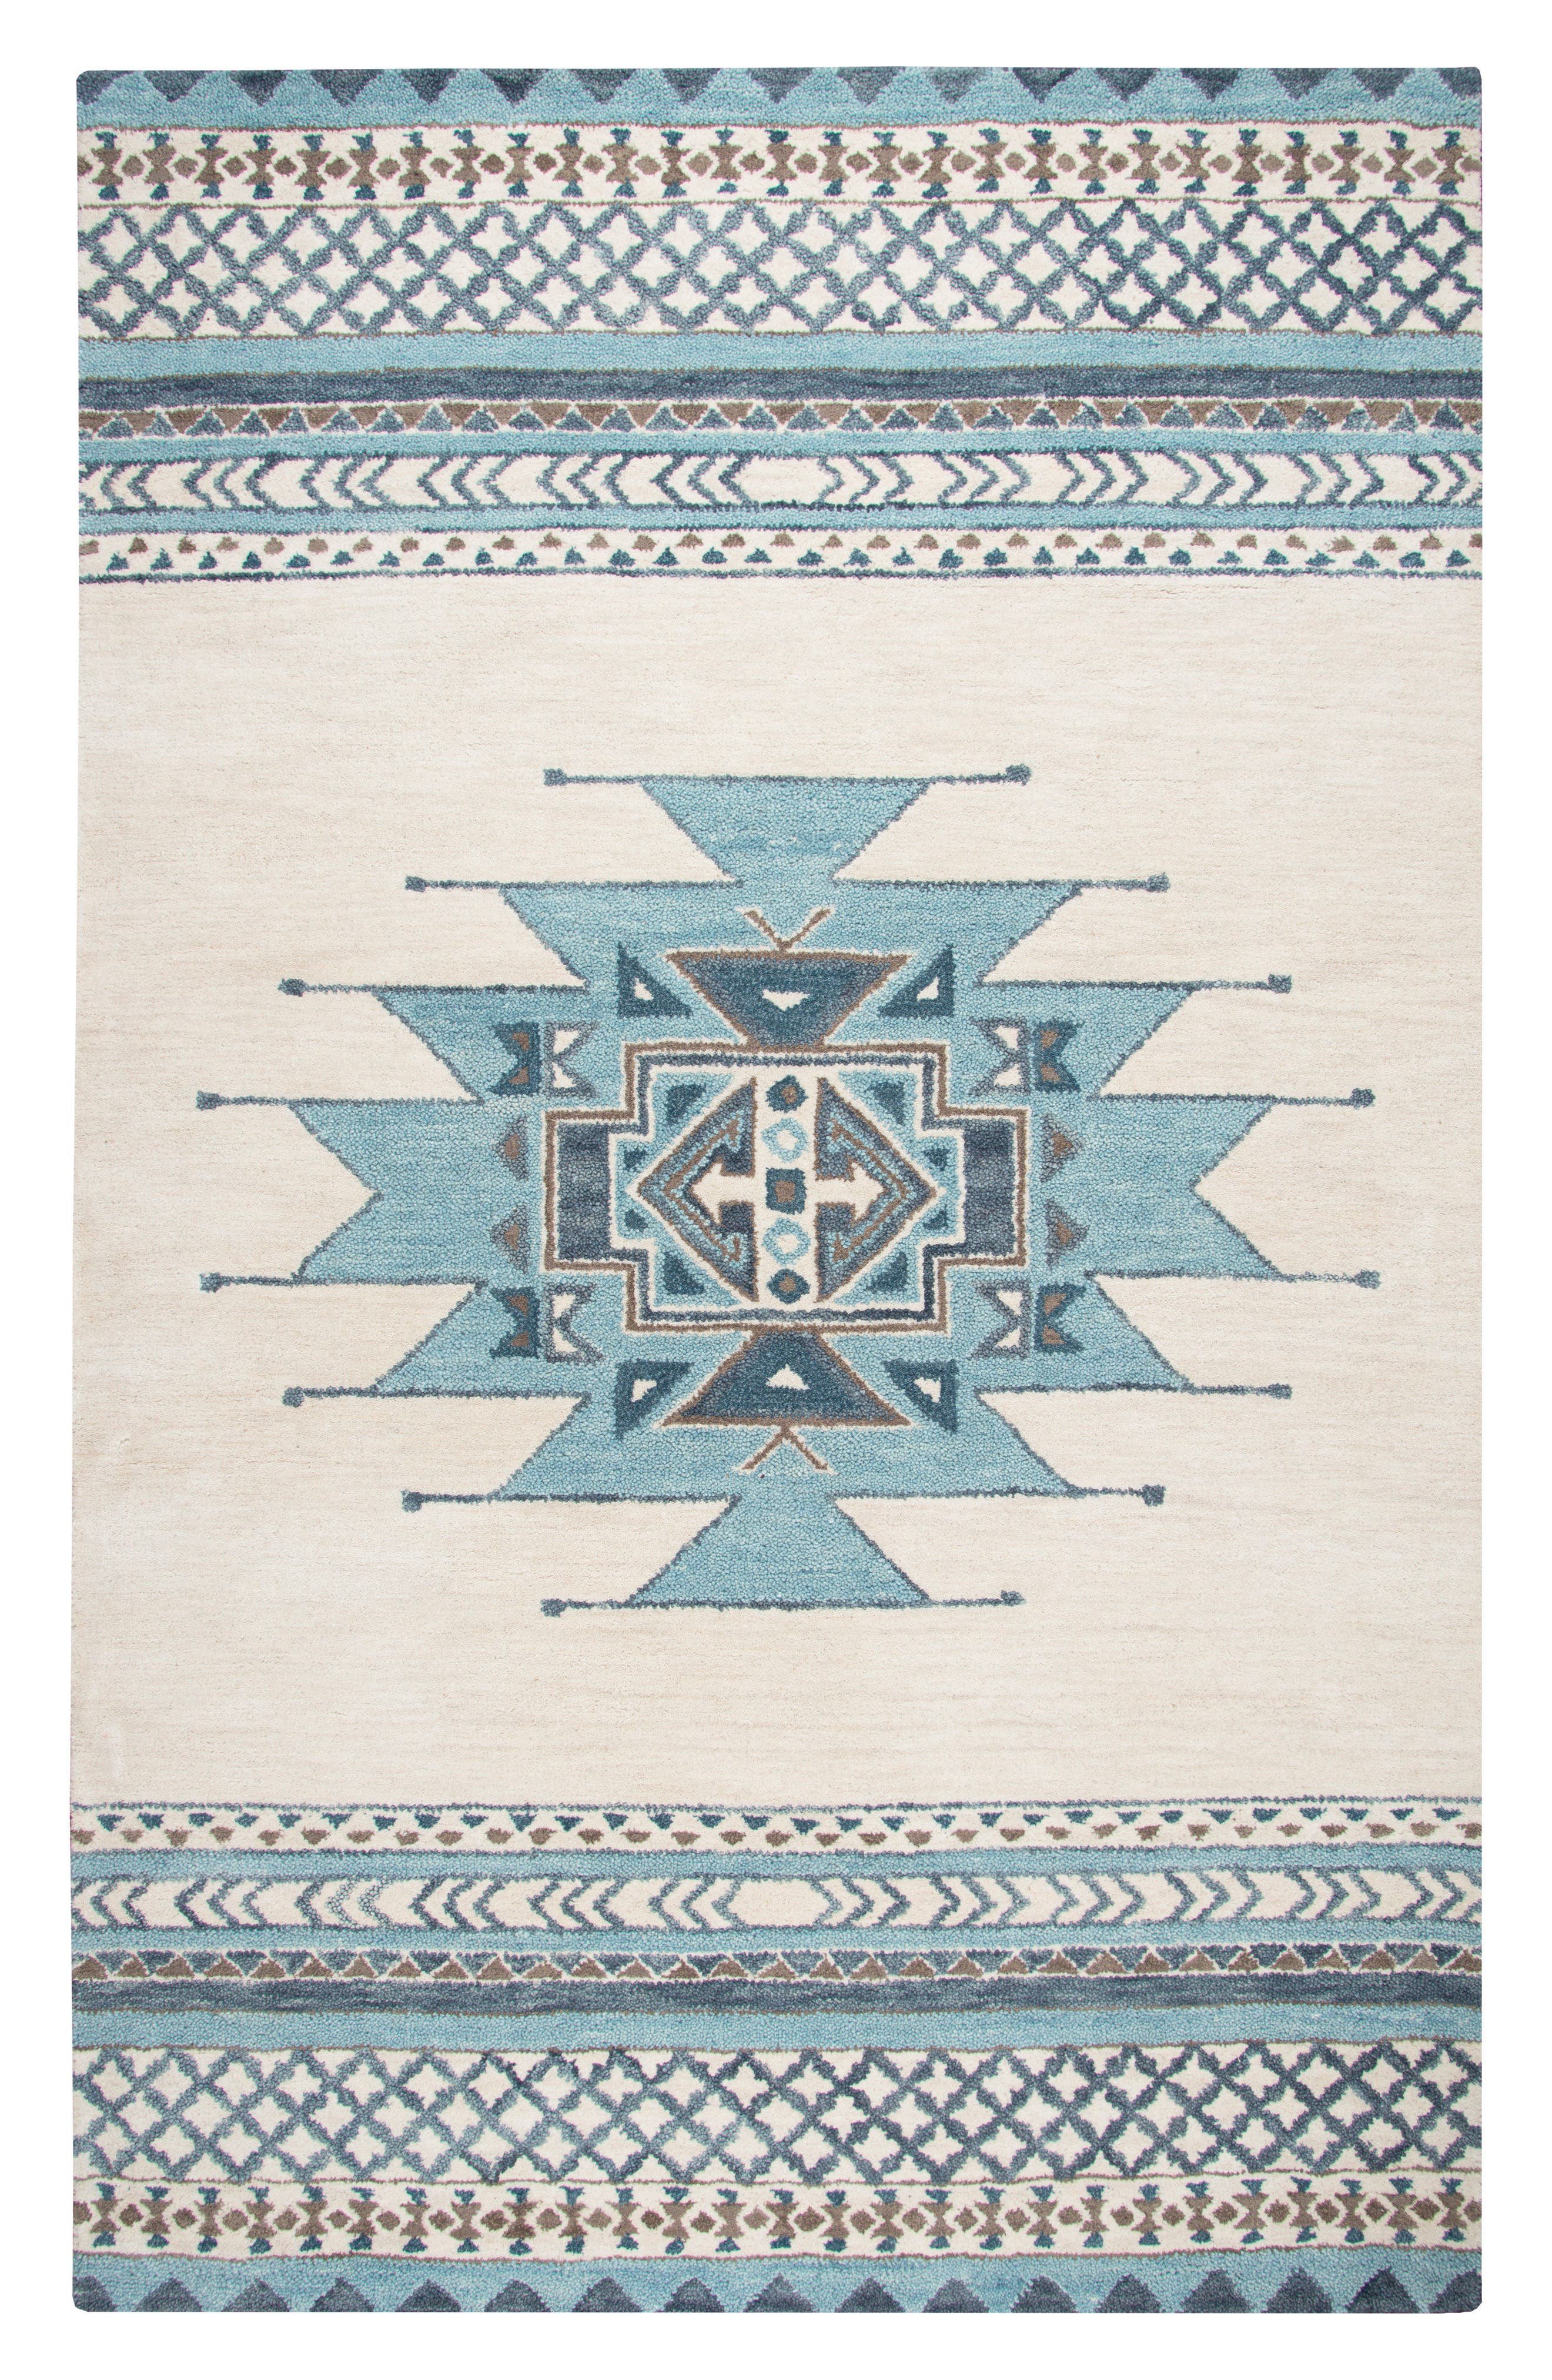 Hand Tufted Wool Blanket Rug,                             Main thumbnail 1, color,                             400